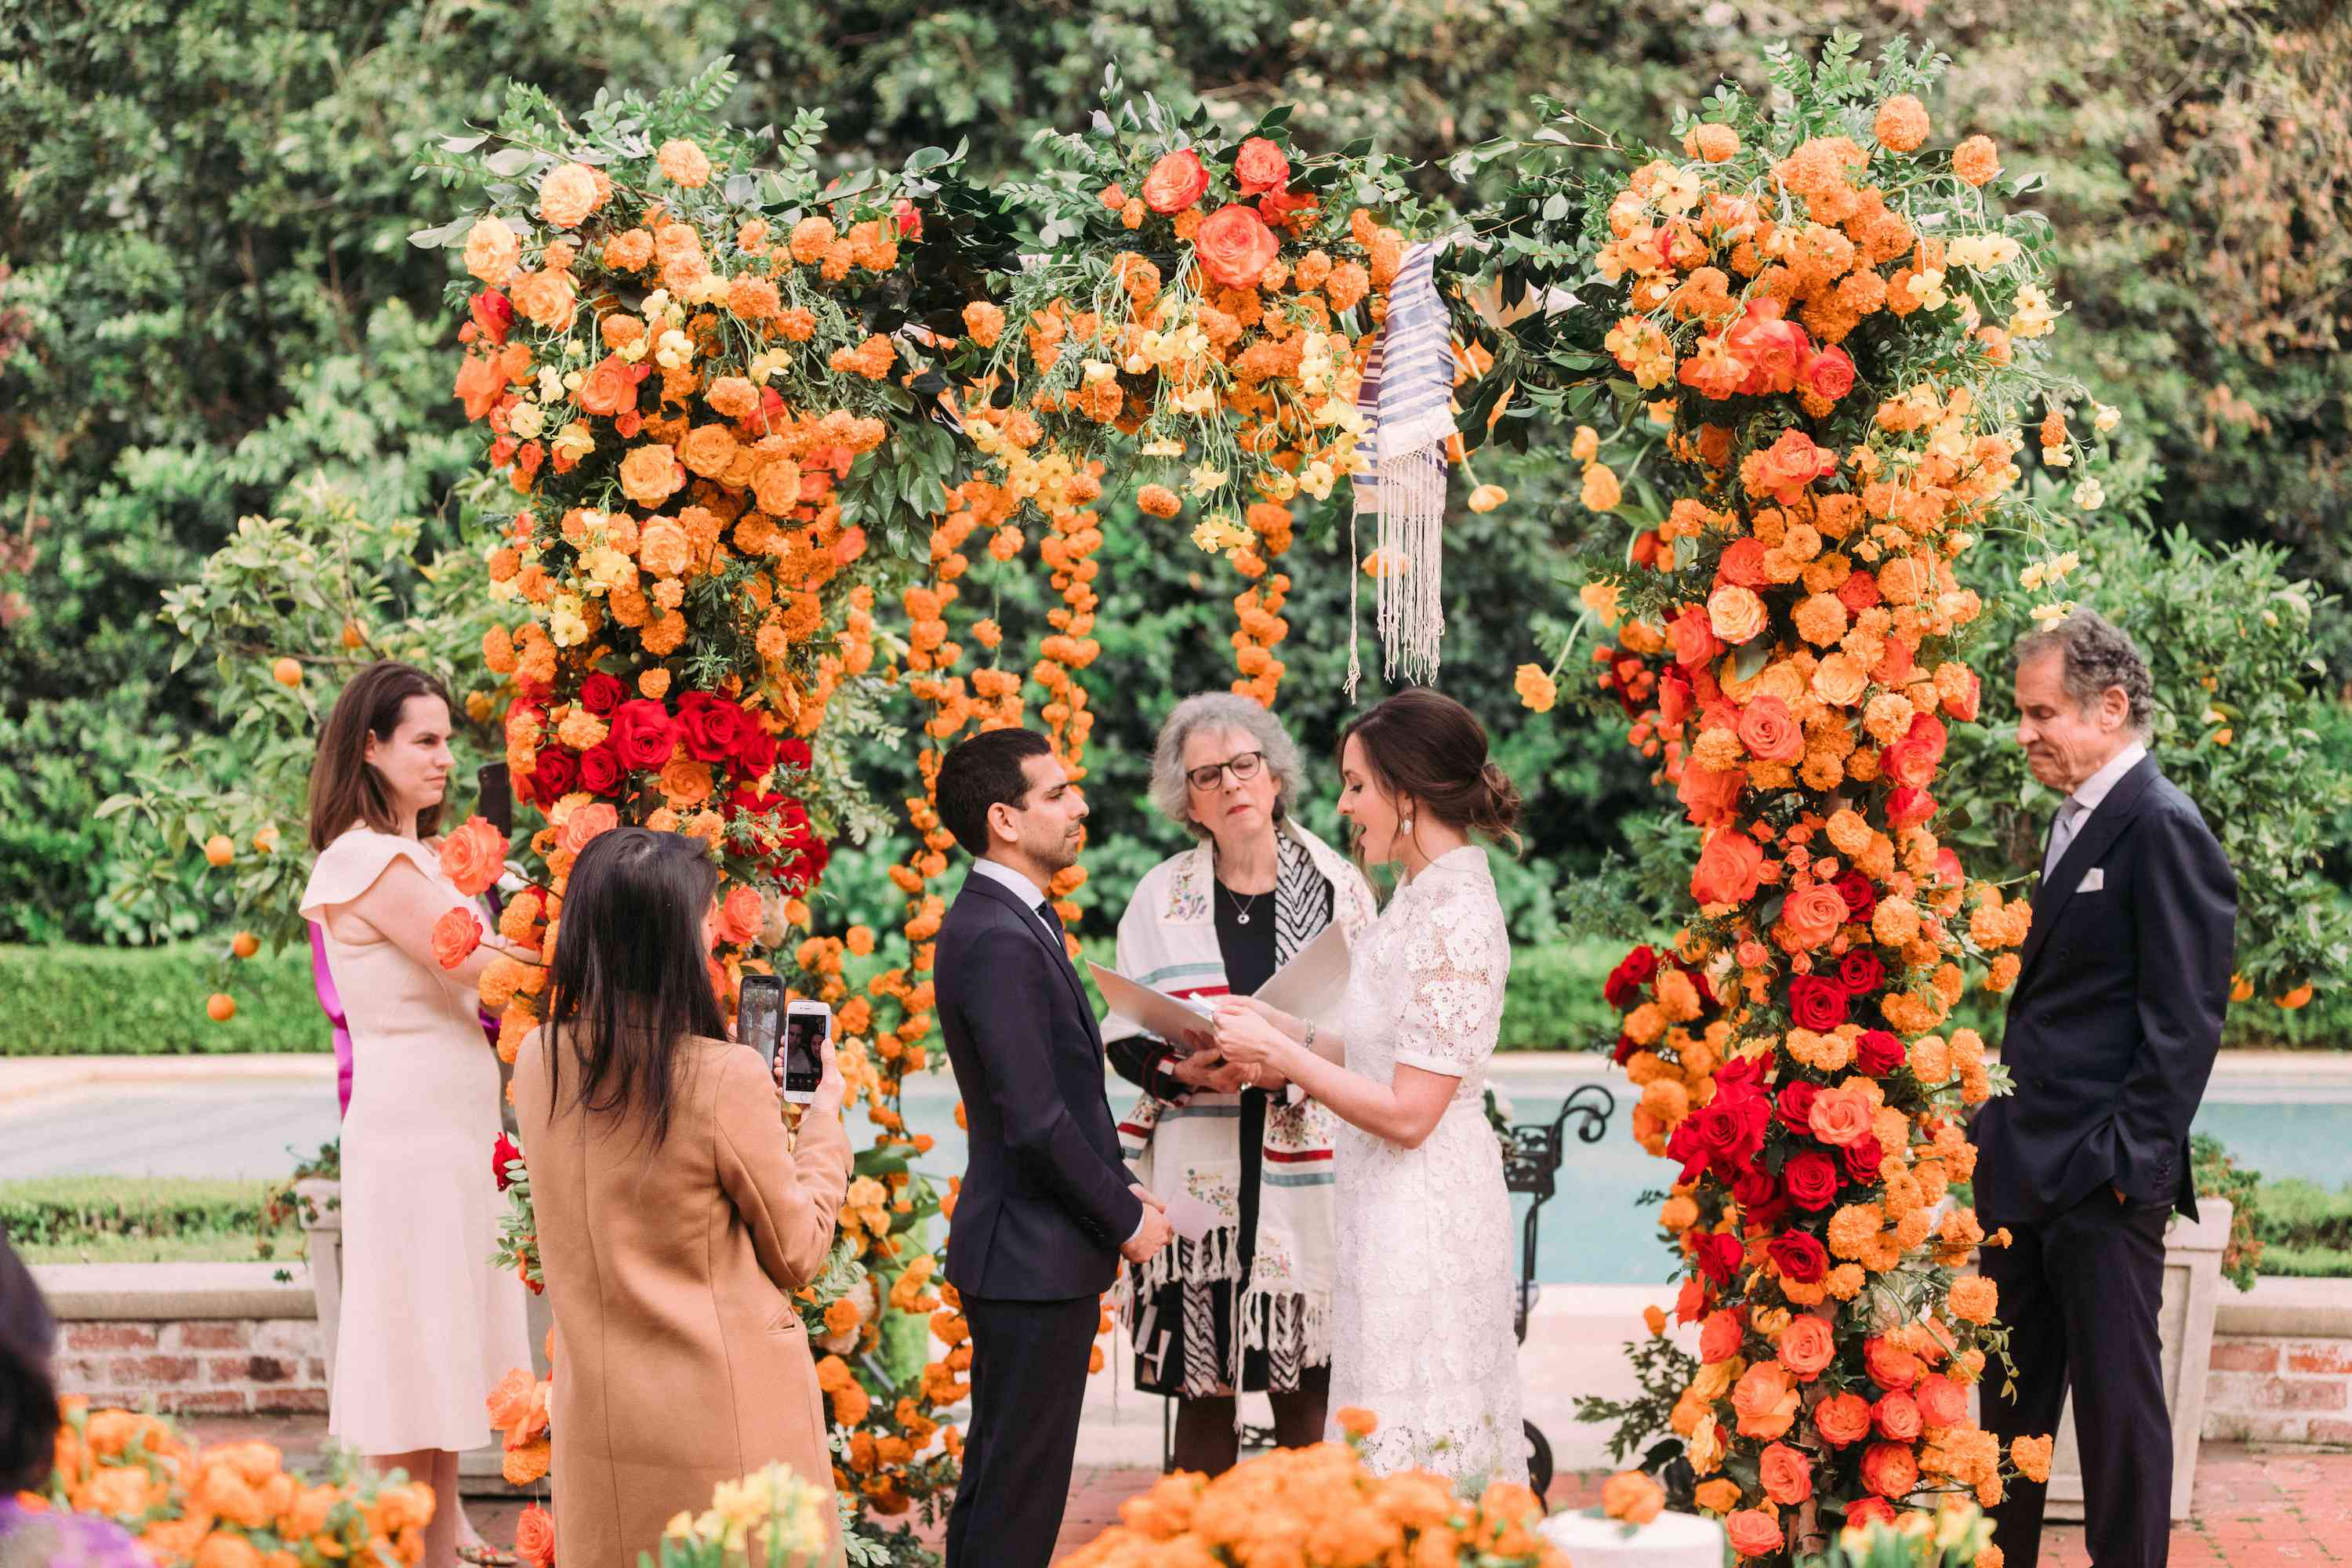 Vow exchange with floral altar